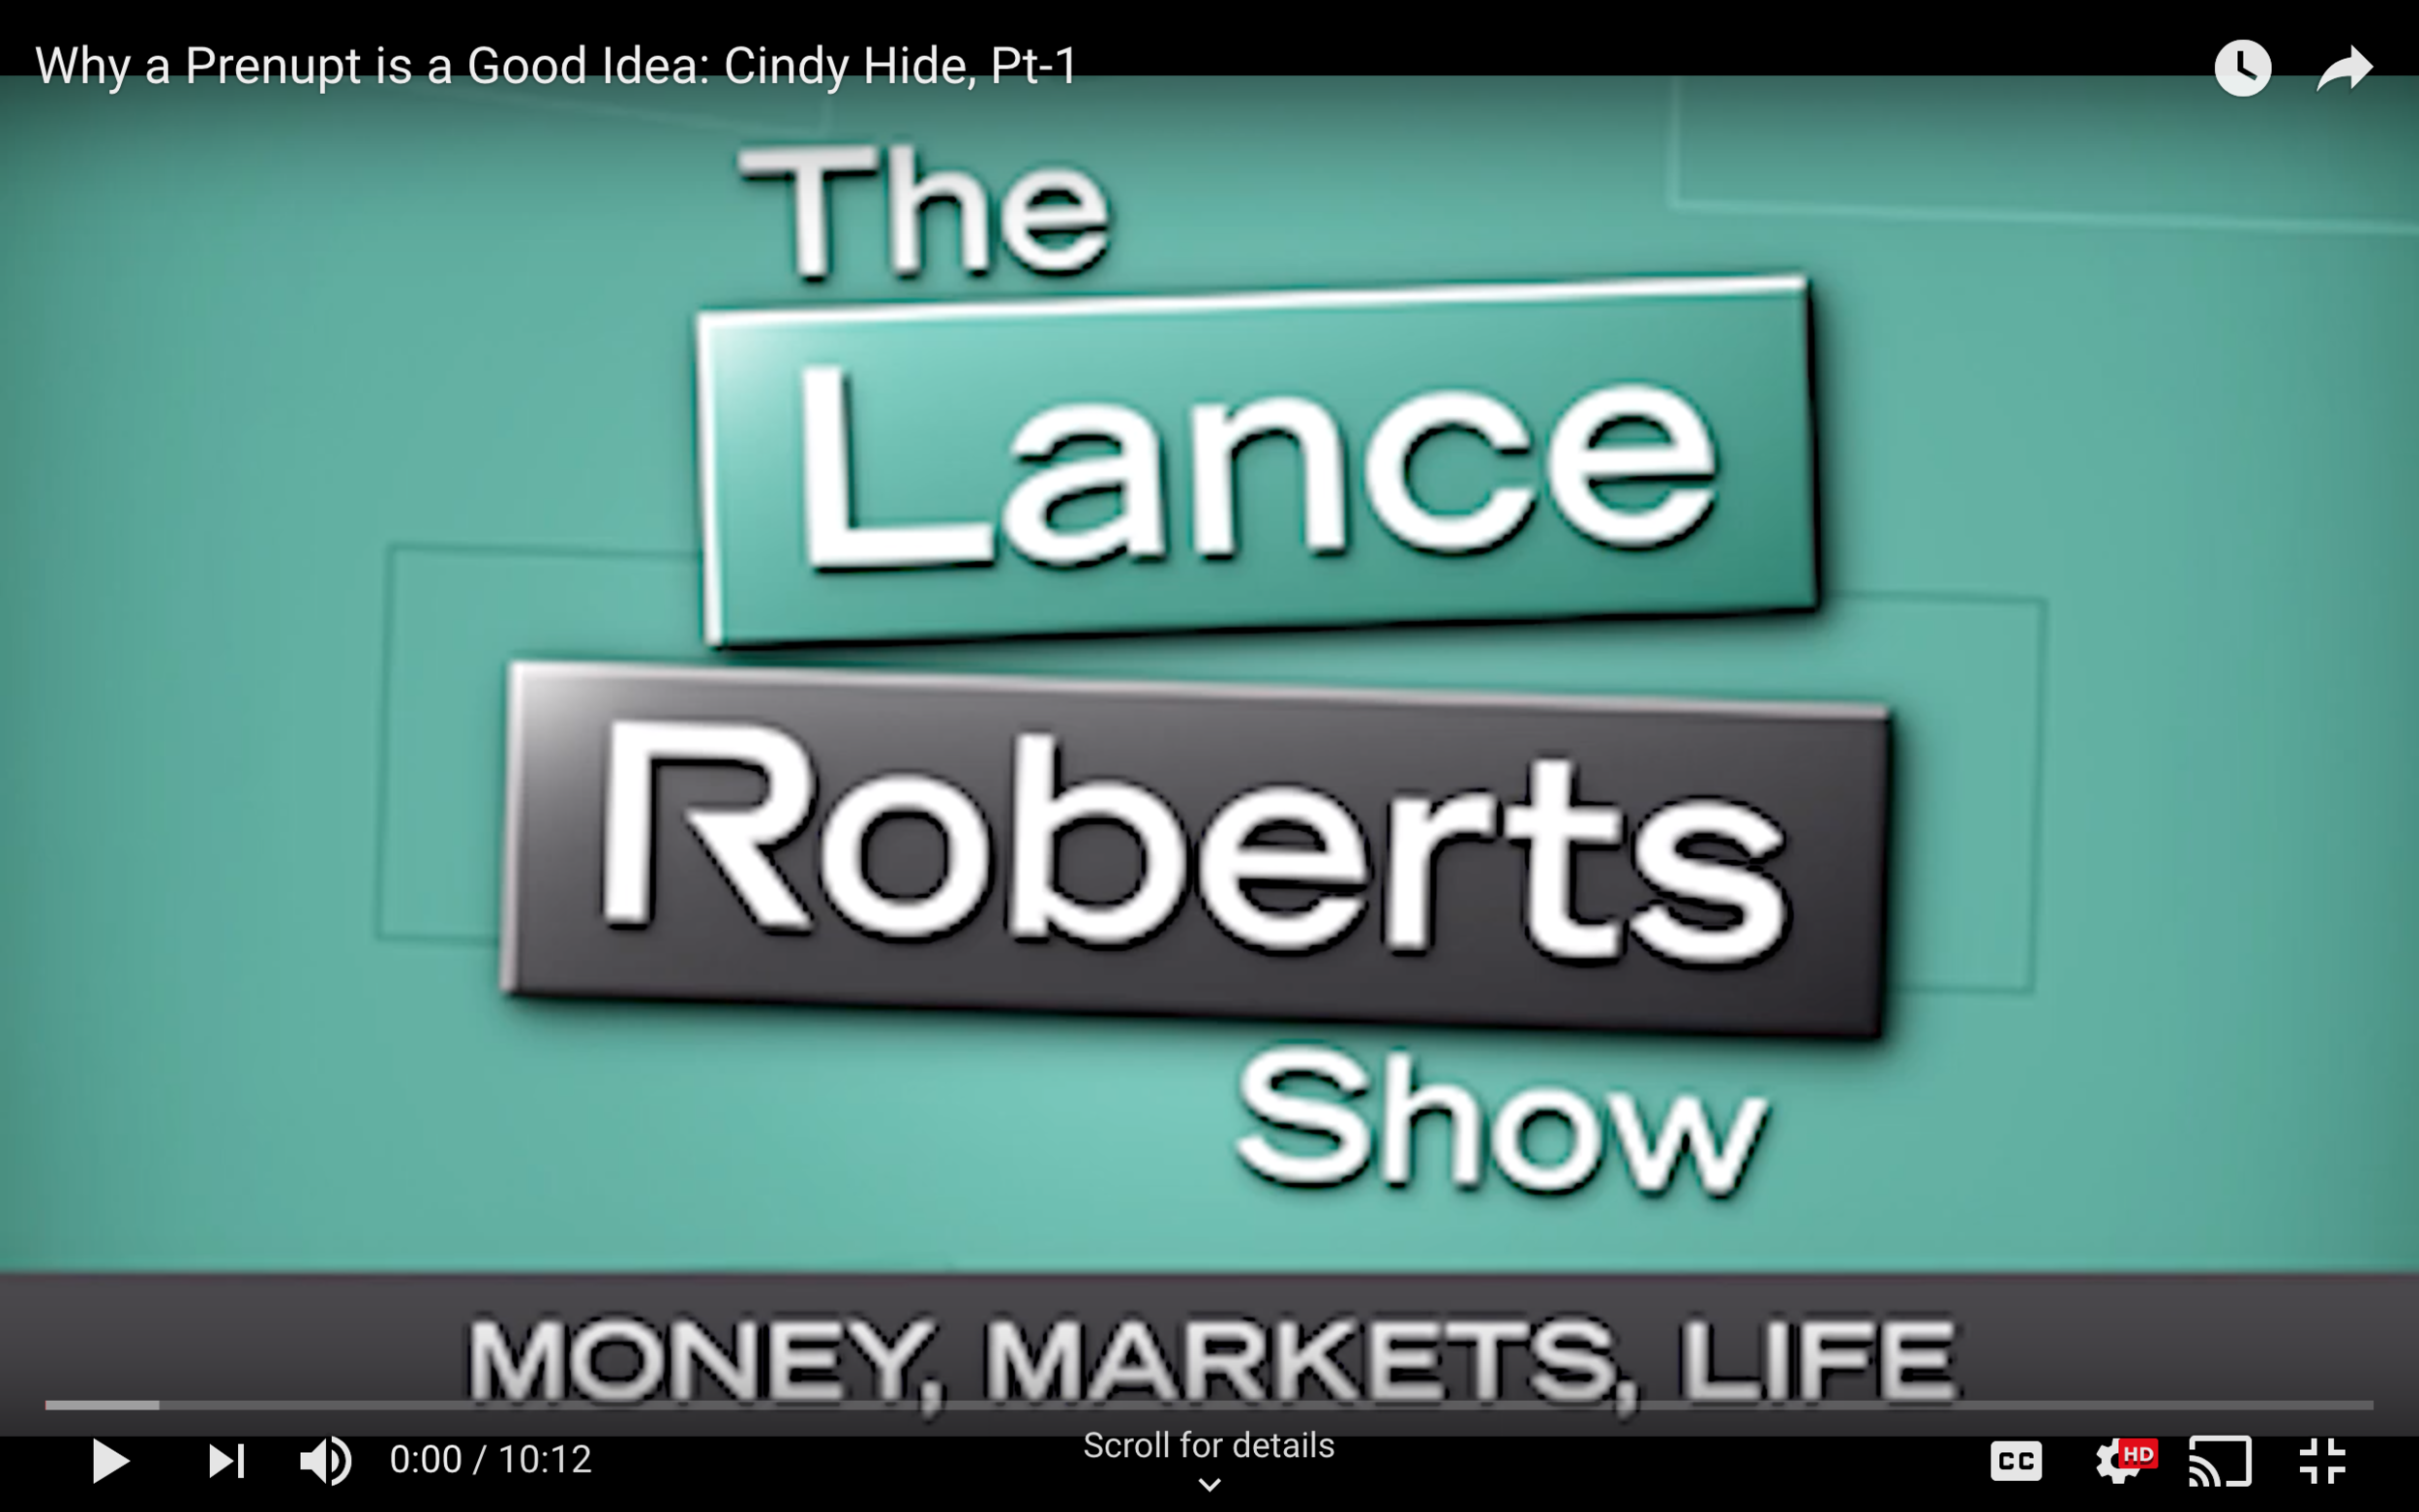 Family law attorney, and founder of Love, Money & the Law, Cindy Hide, is featured on The Lance Roberts Show discussing the basics of cohabitation agreements in Houston, Texas.